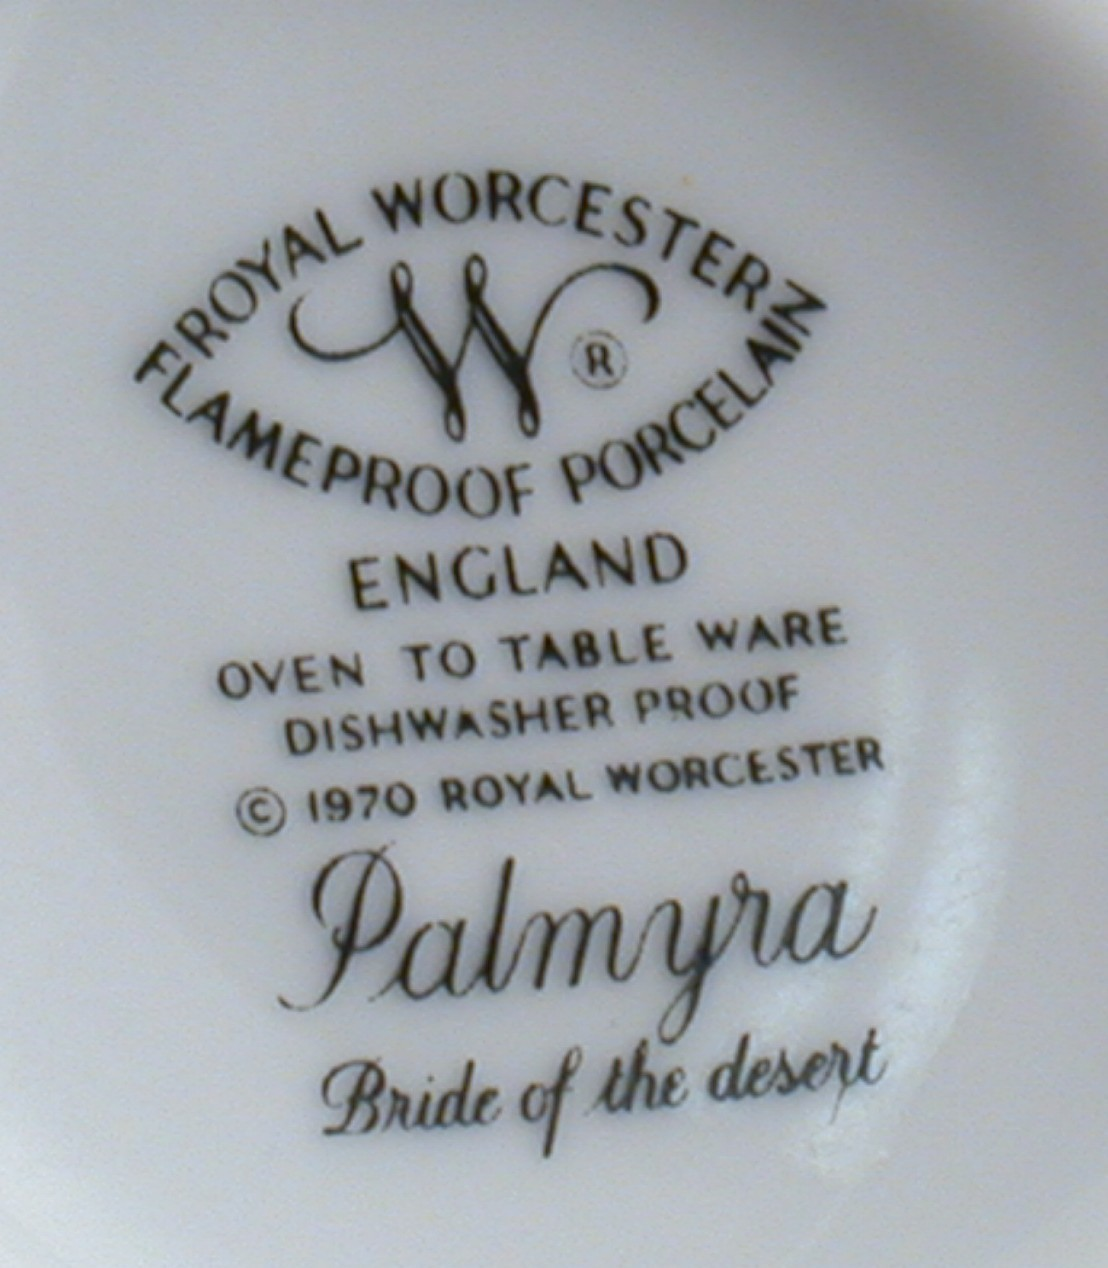 Royal Worcester Palmyra Cup Bride of the Desert